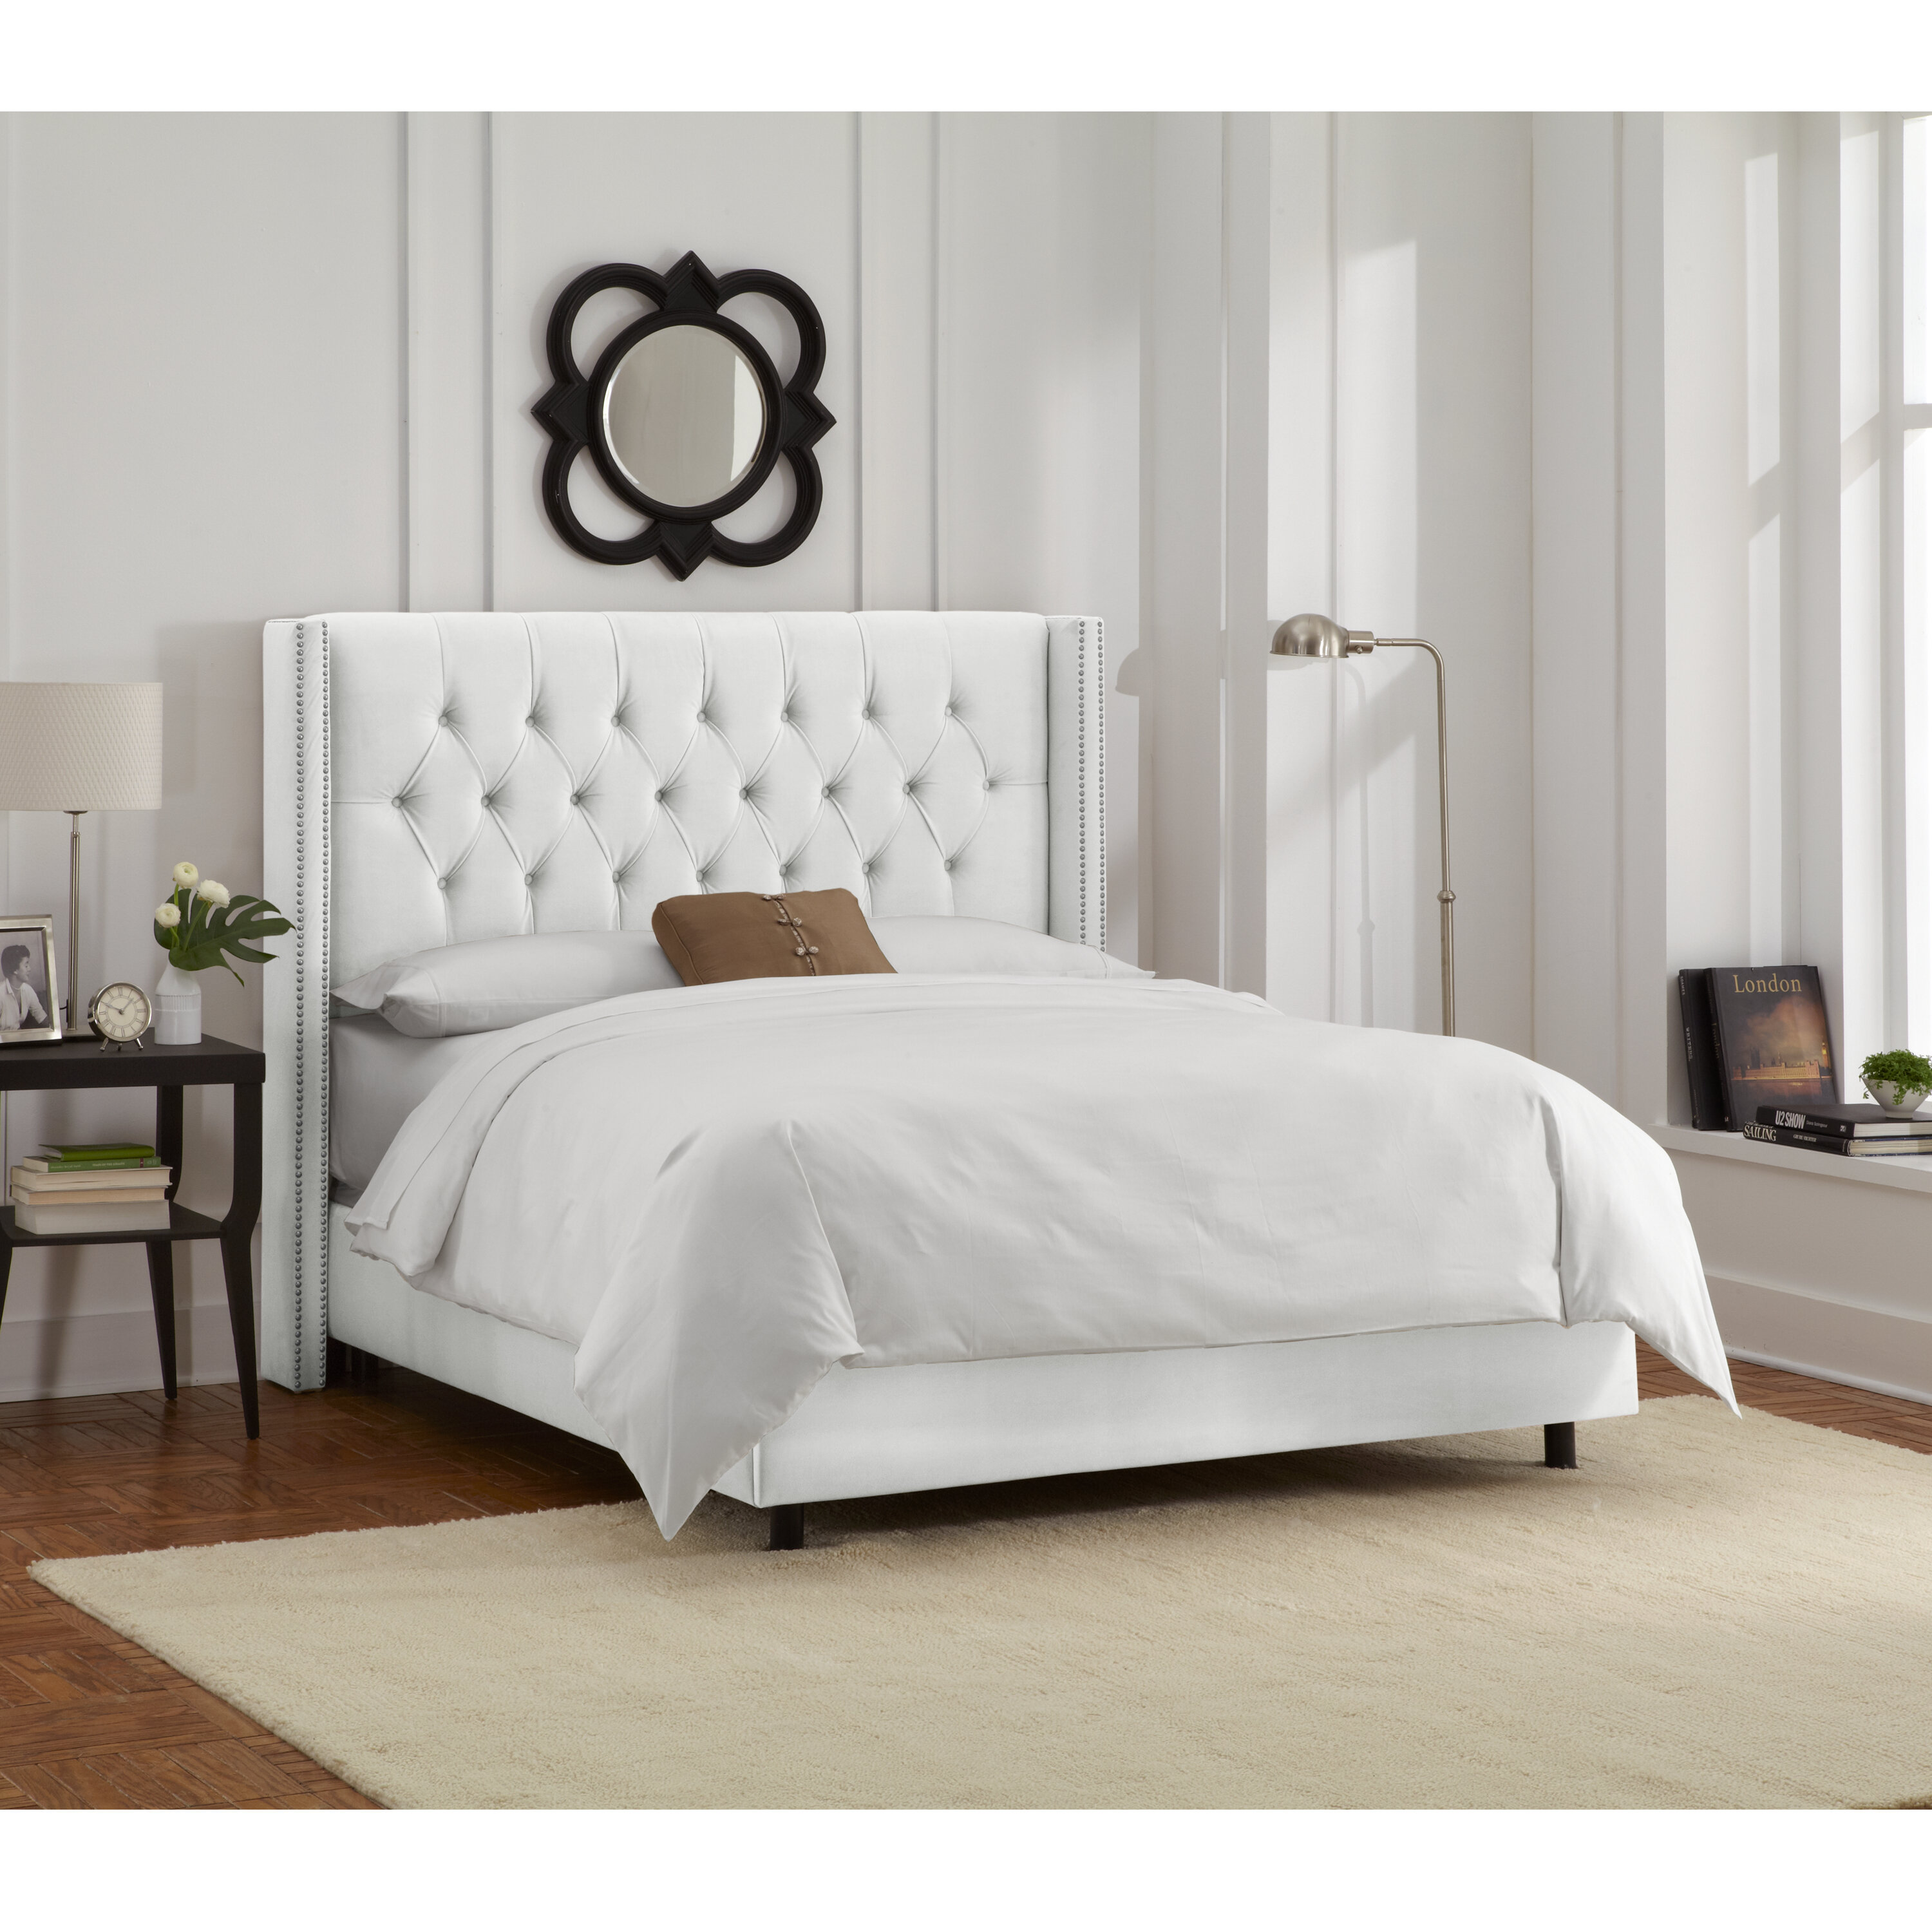 The Best Way To Decorate A Neutral Bedroom Wayfair